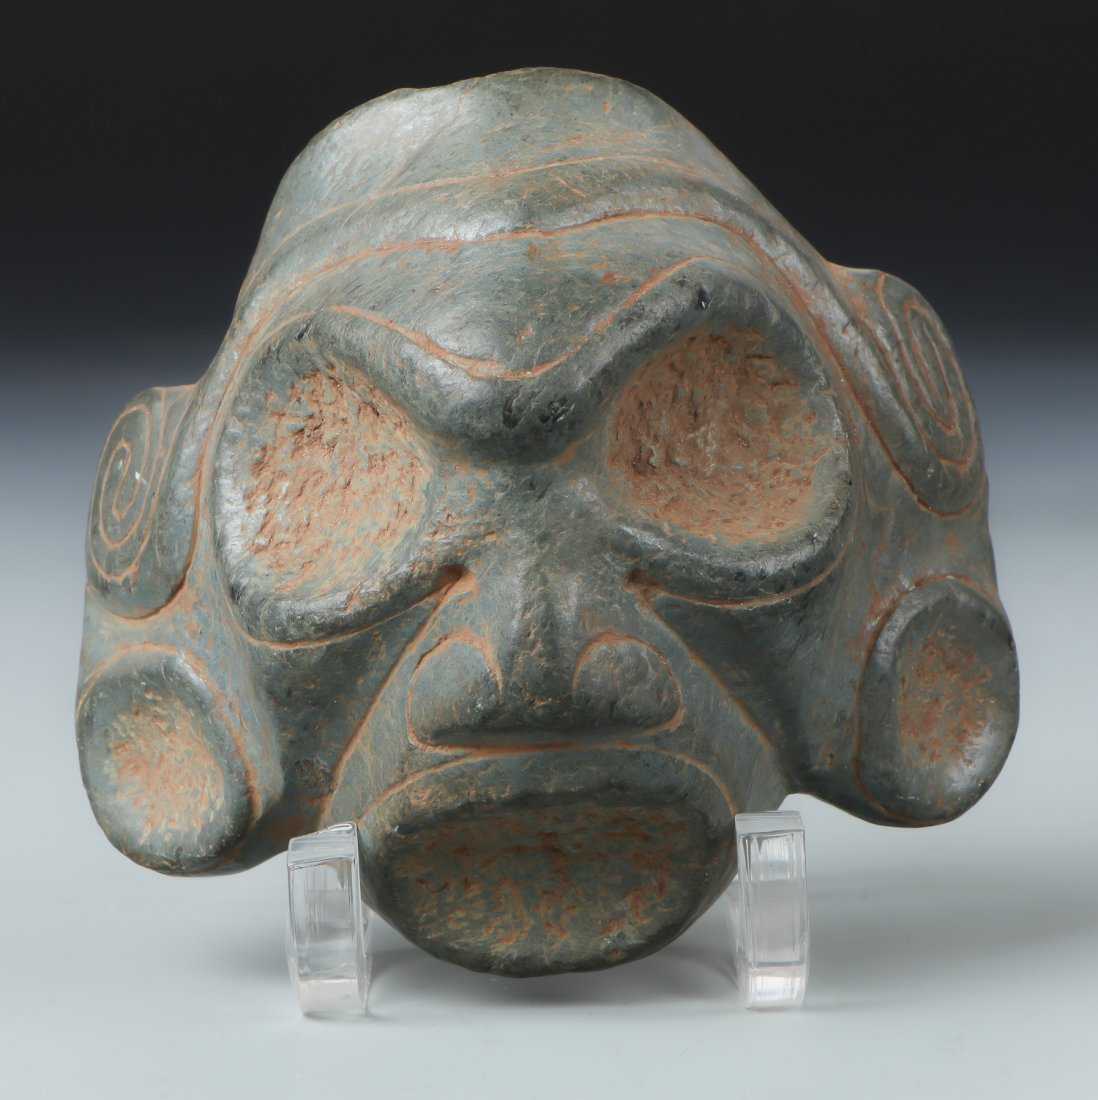 Taino Ancestral Face (1000-1500 CE)